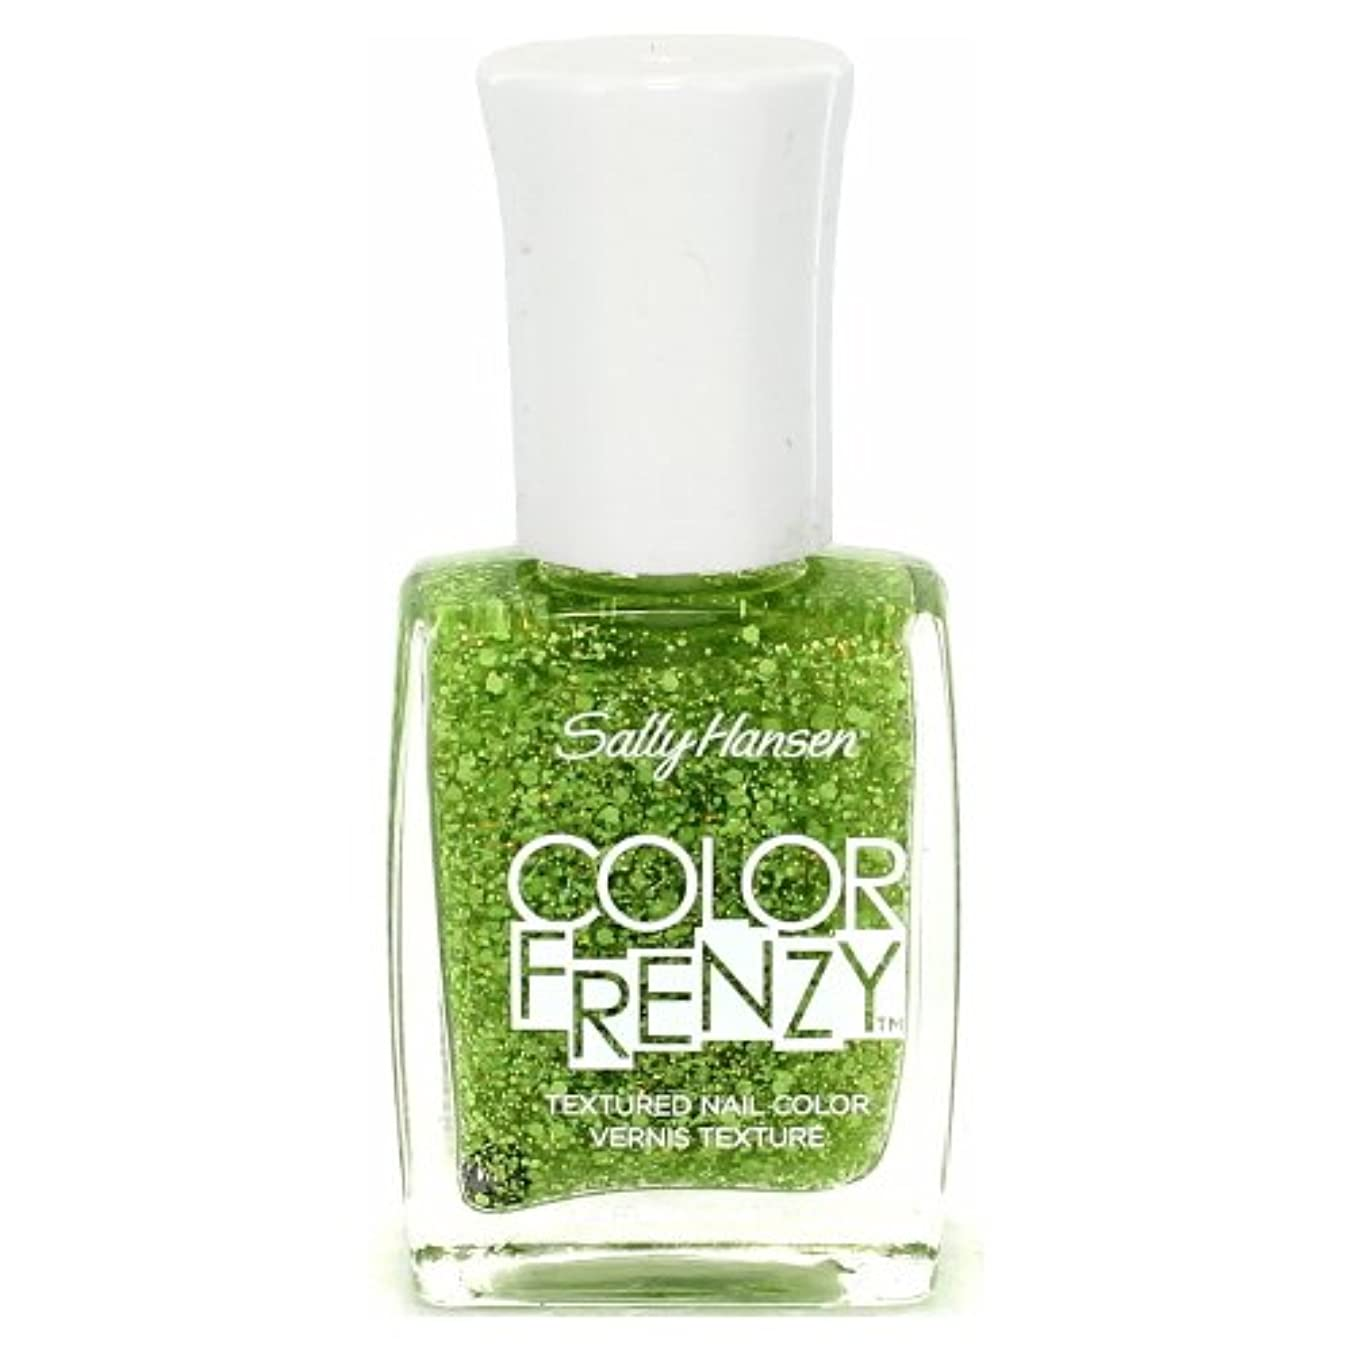 (6 Pack) SALLY HANSEN Color Frenzy Textured Nail Color - Green Machine (並行輸入品)